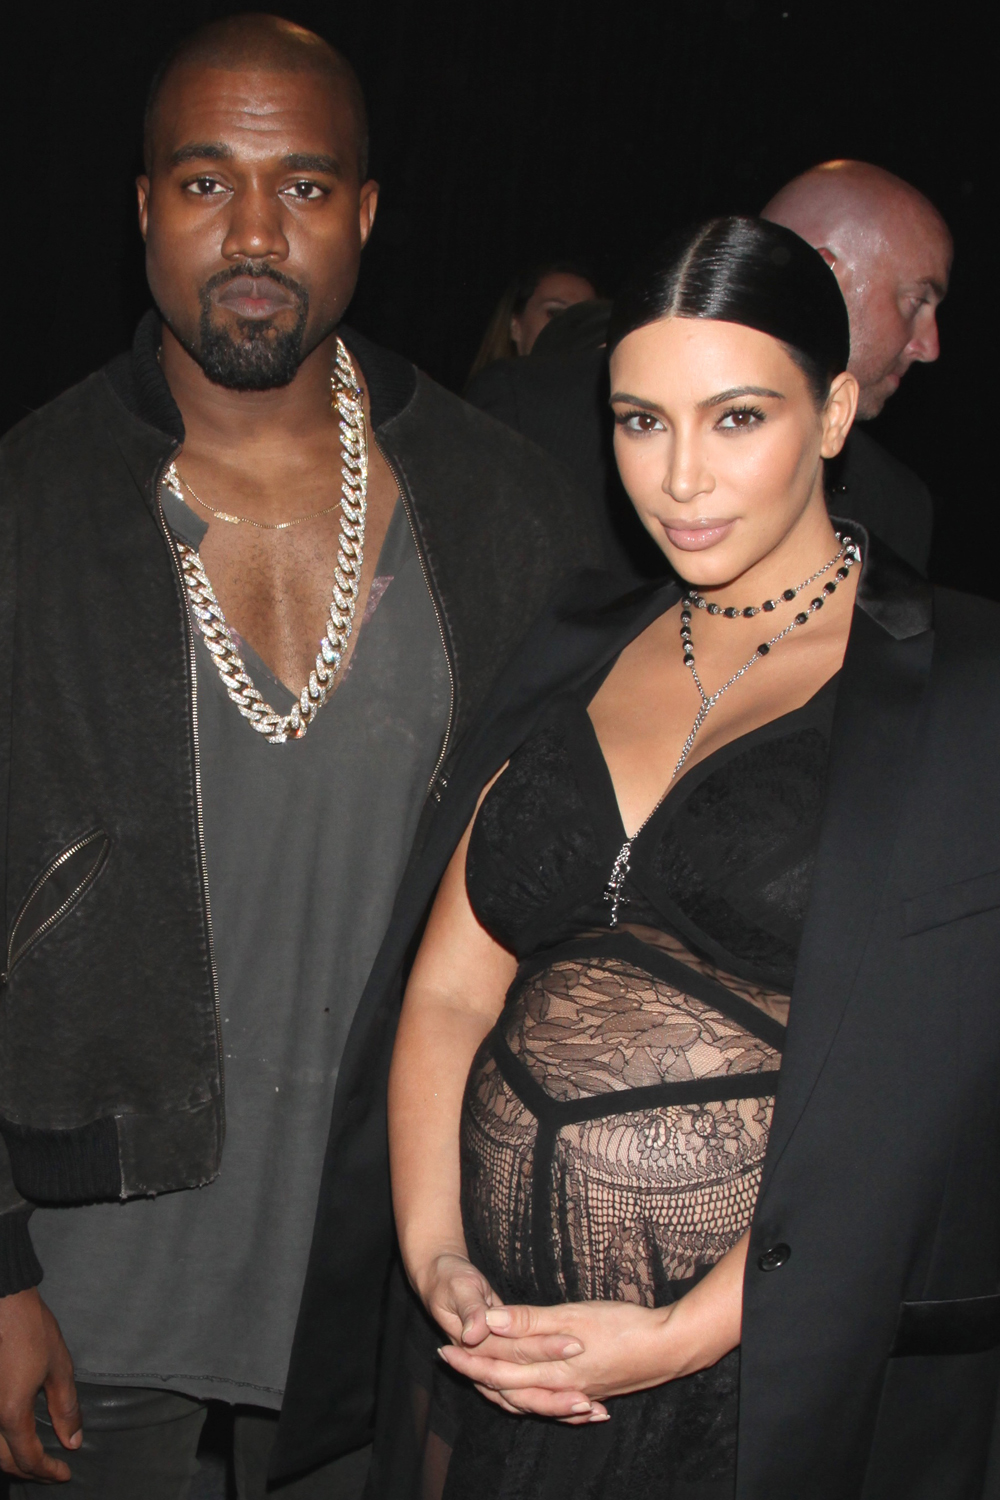 Kanye West Going Off Meds Could Explain Slavery is 'a ...